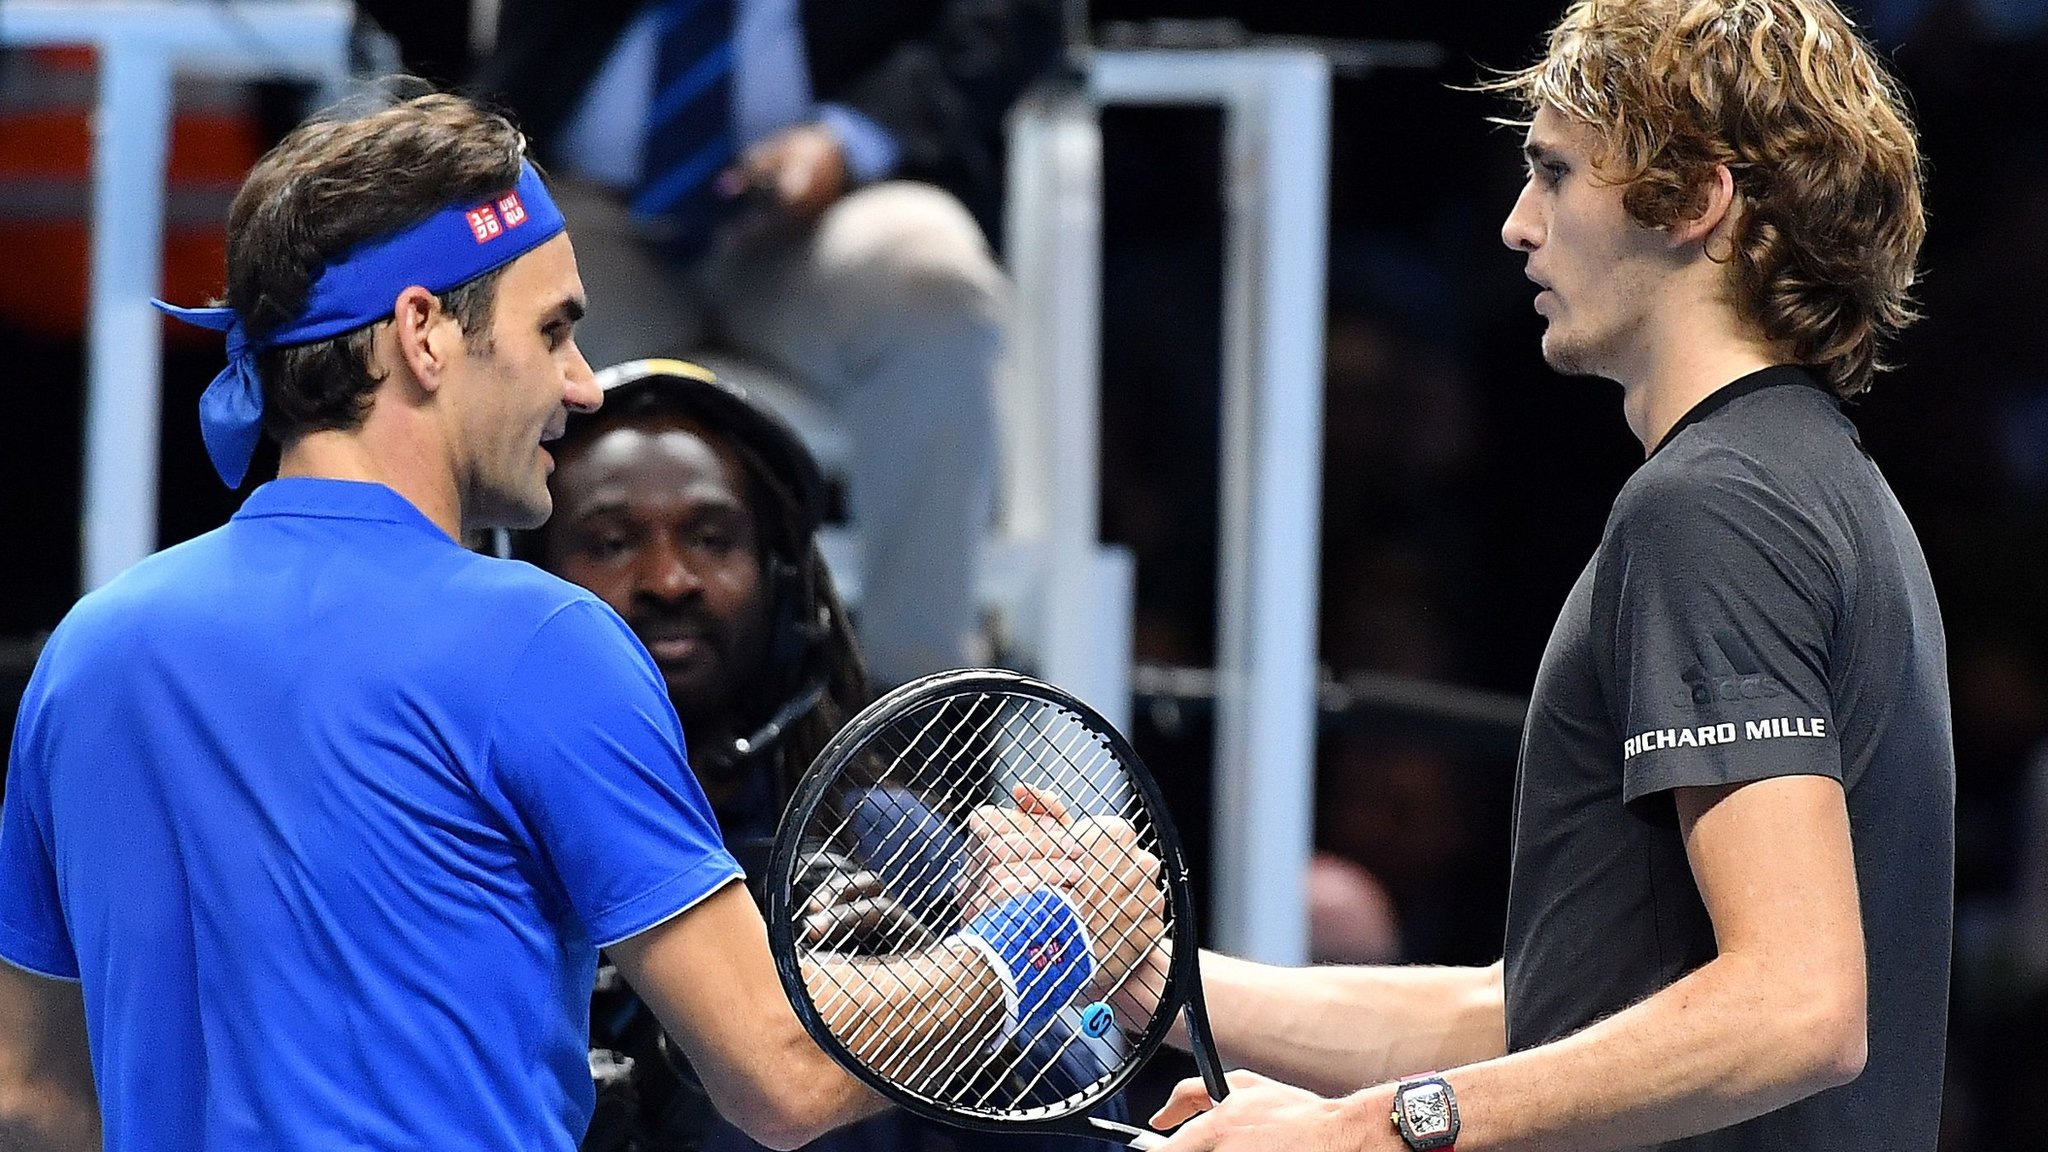 'I hope the boy doesn't have a sleepless night' - Federer defends Zverev and ball boy